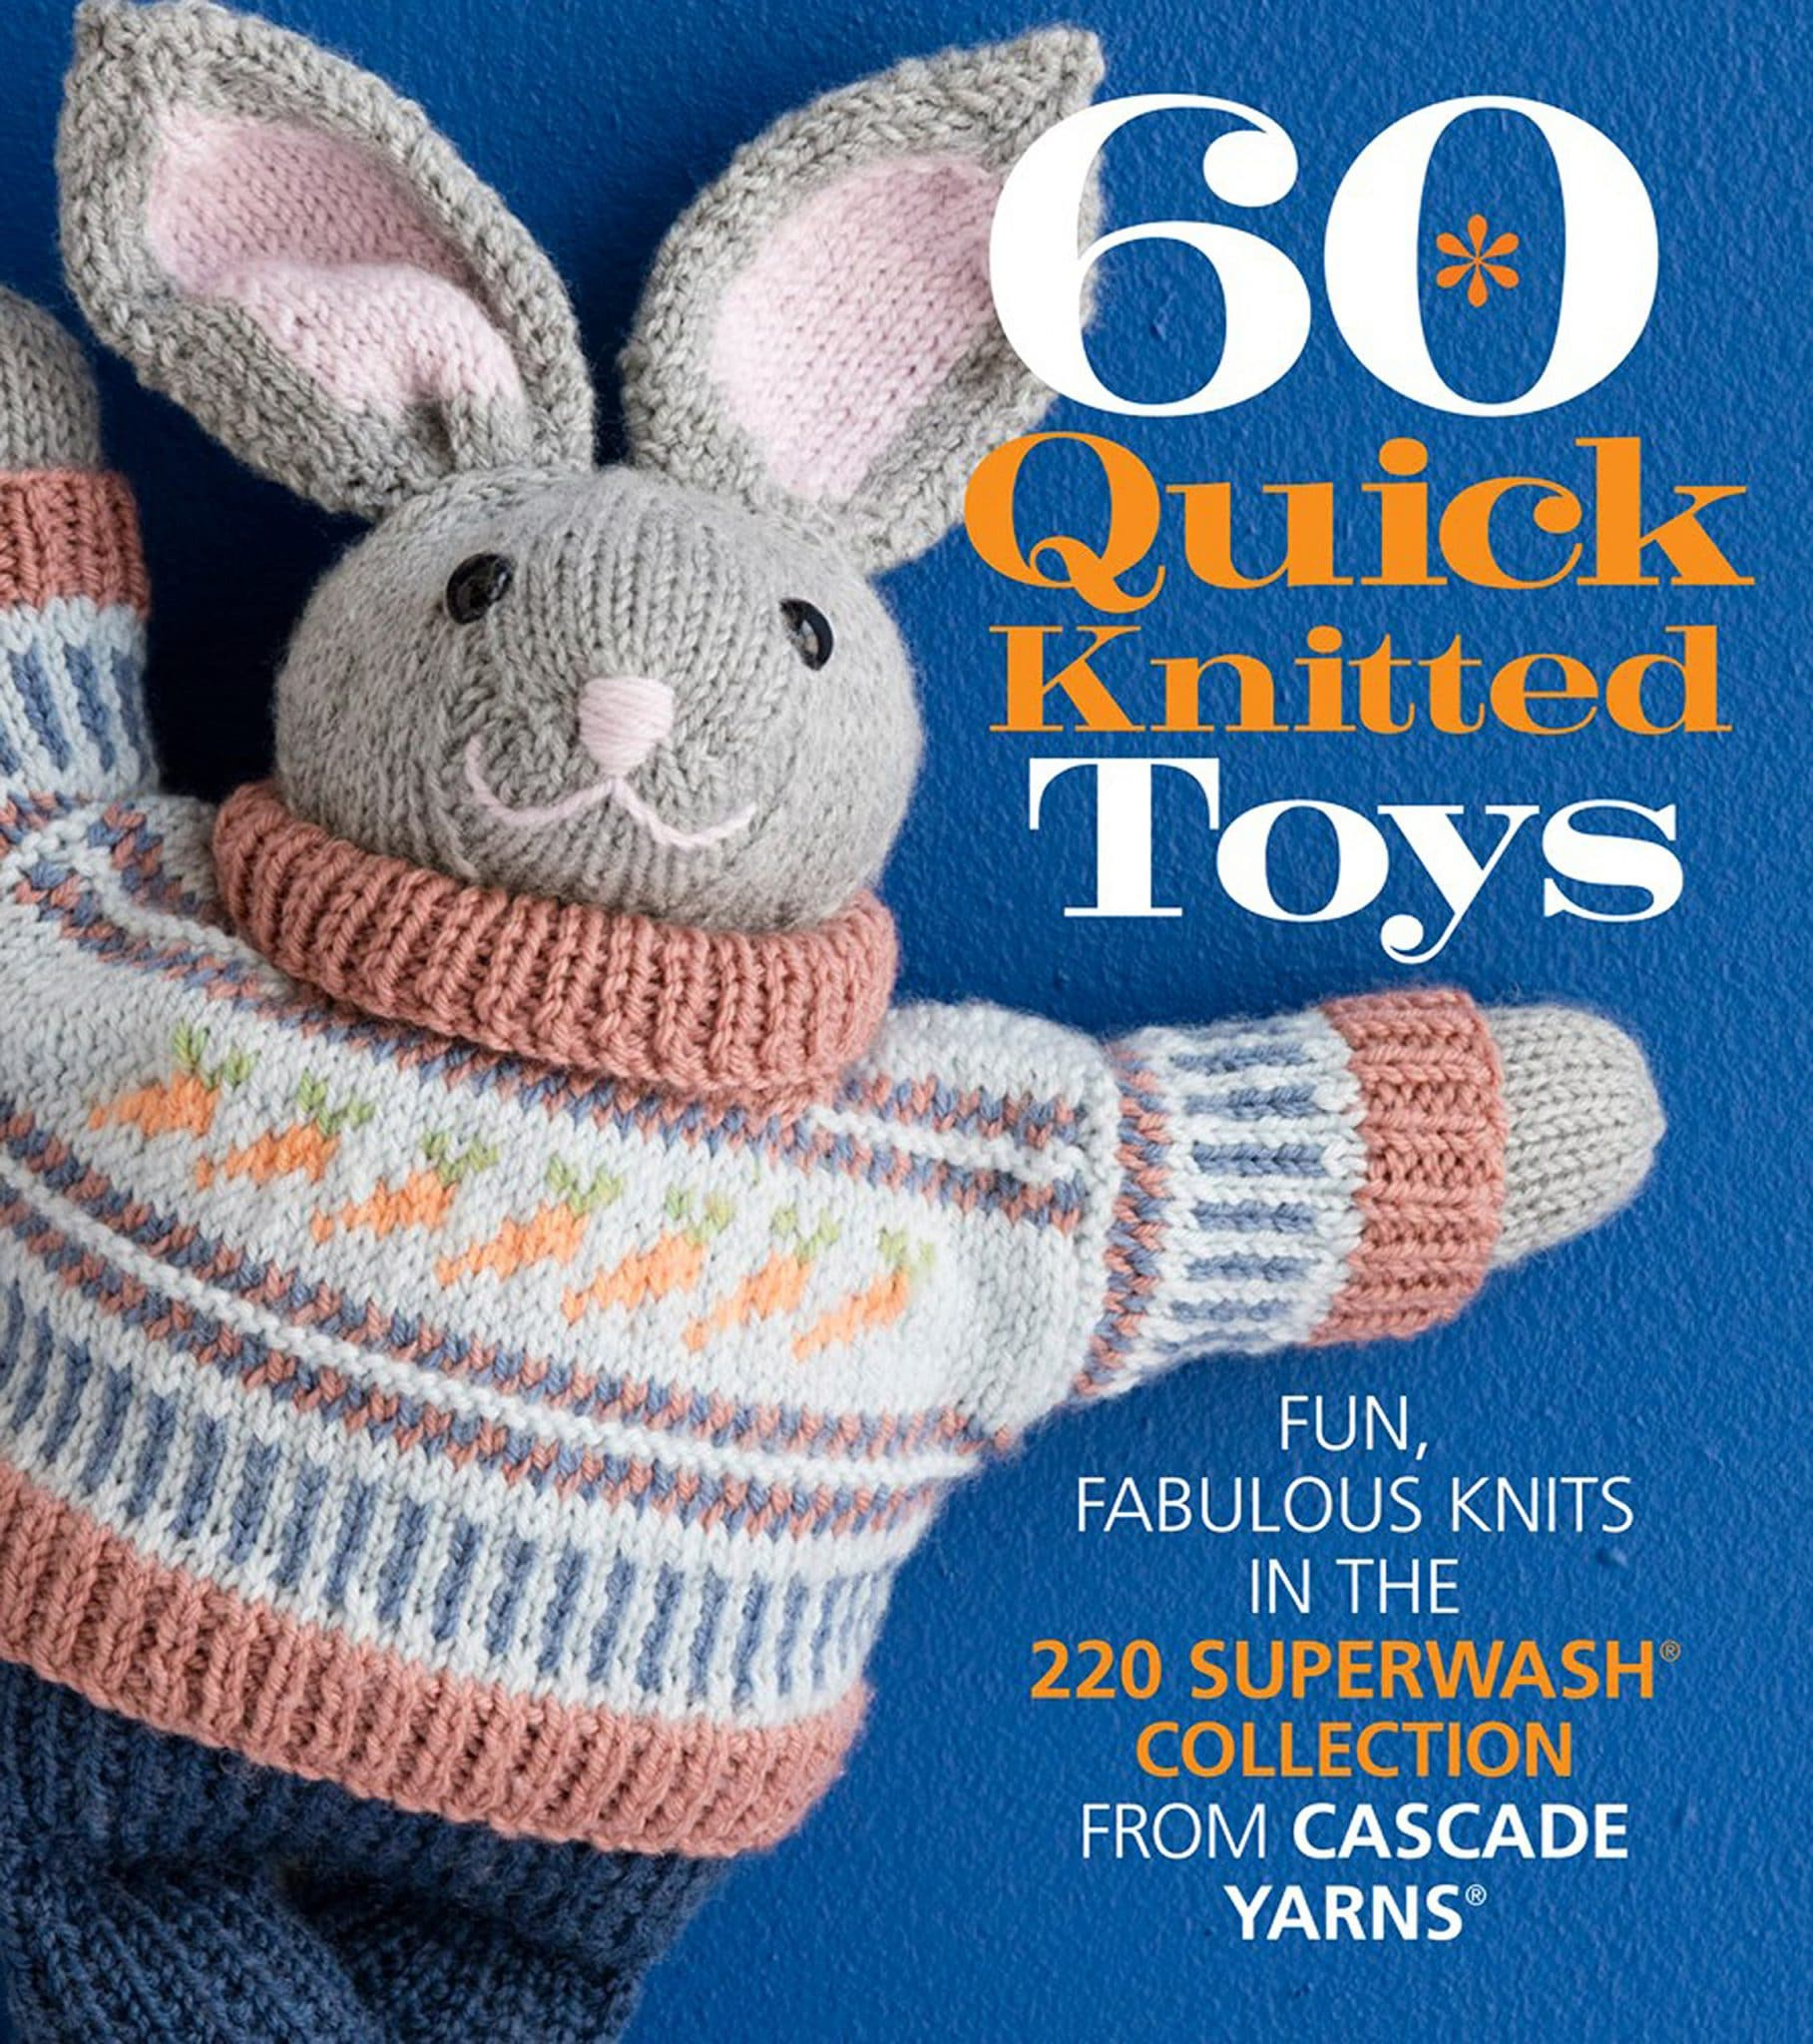 60 Quick Knitted Toys: Fun, Fabulous Knits in the 220 Superwash (R) Collection from Cascade Yarns (R) (60 Quick Knits Collection)